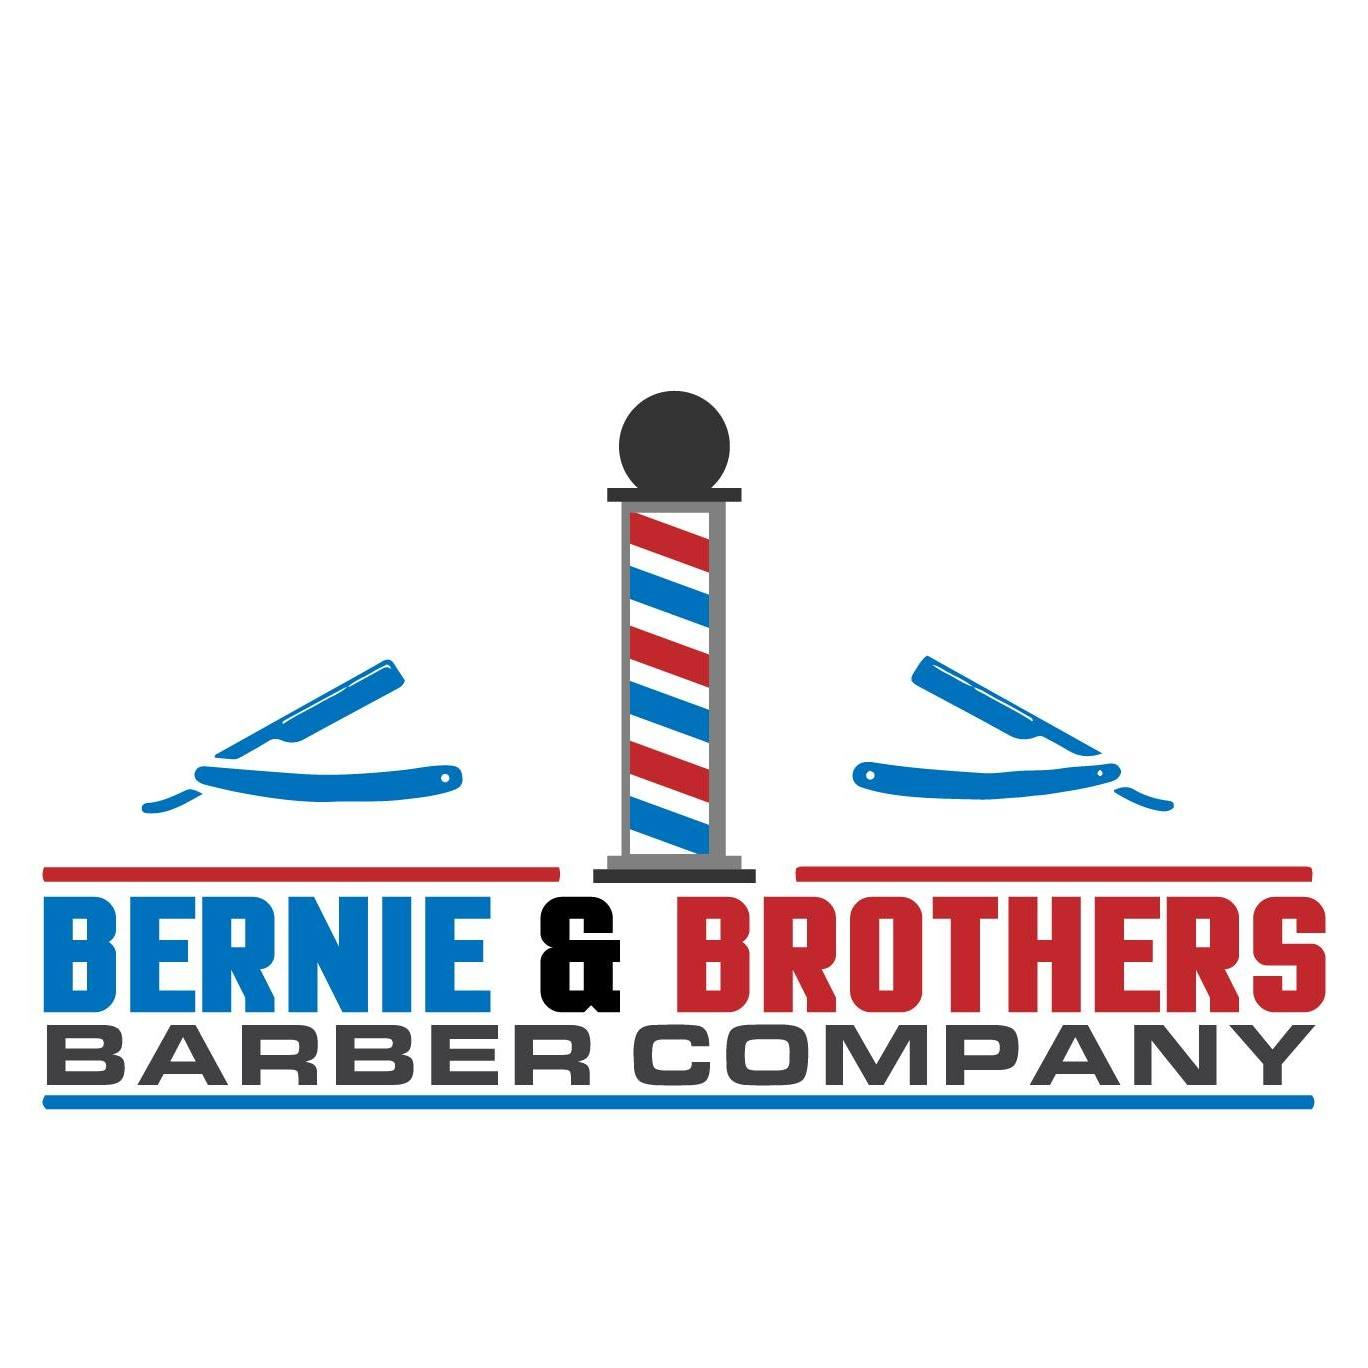 Bernie & Brothers Barber Co.